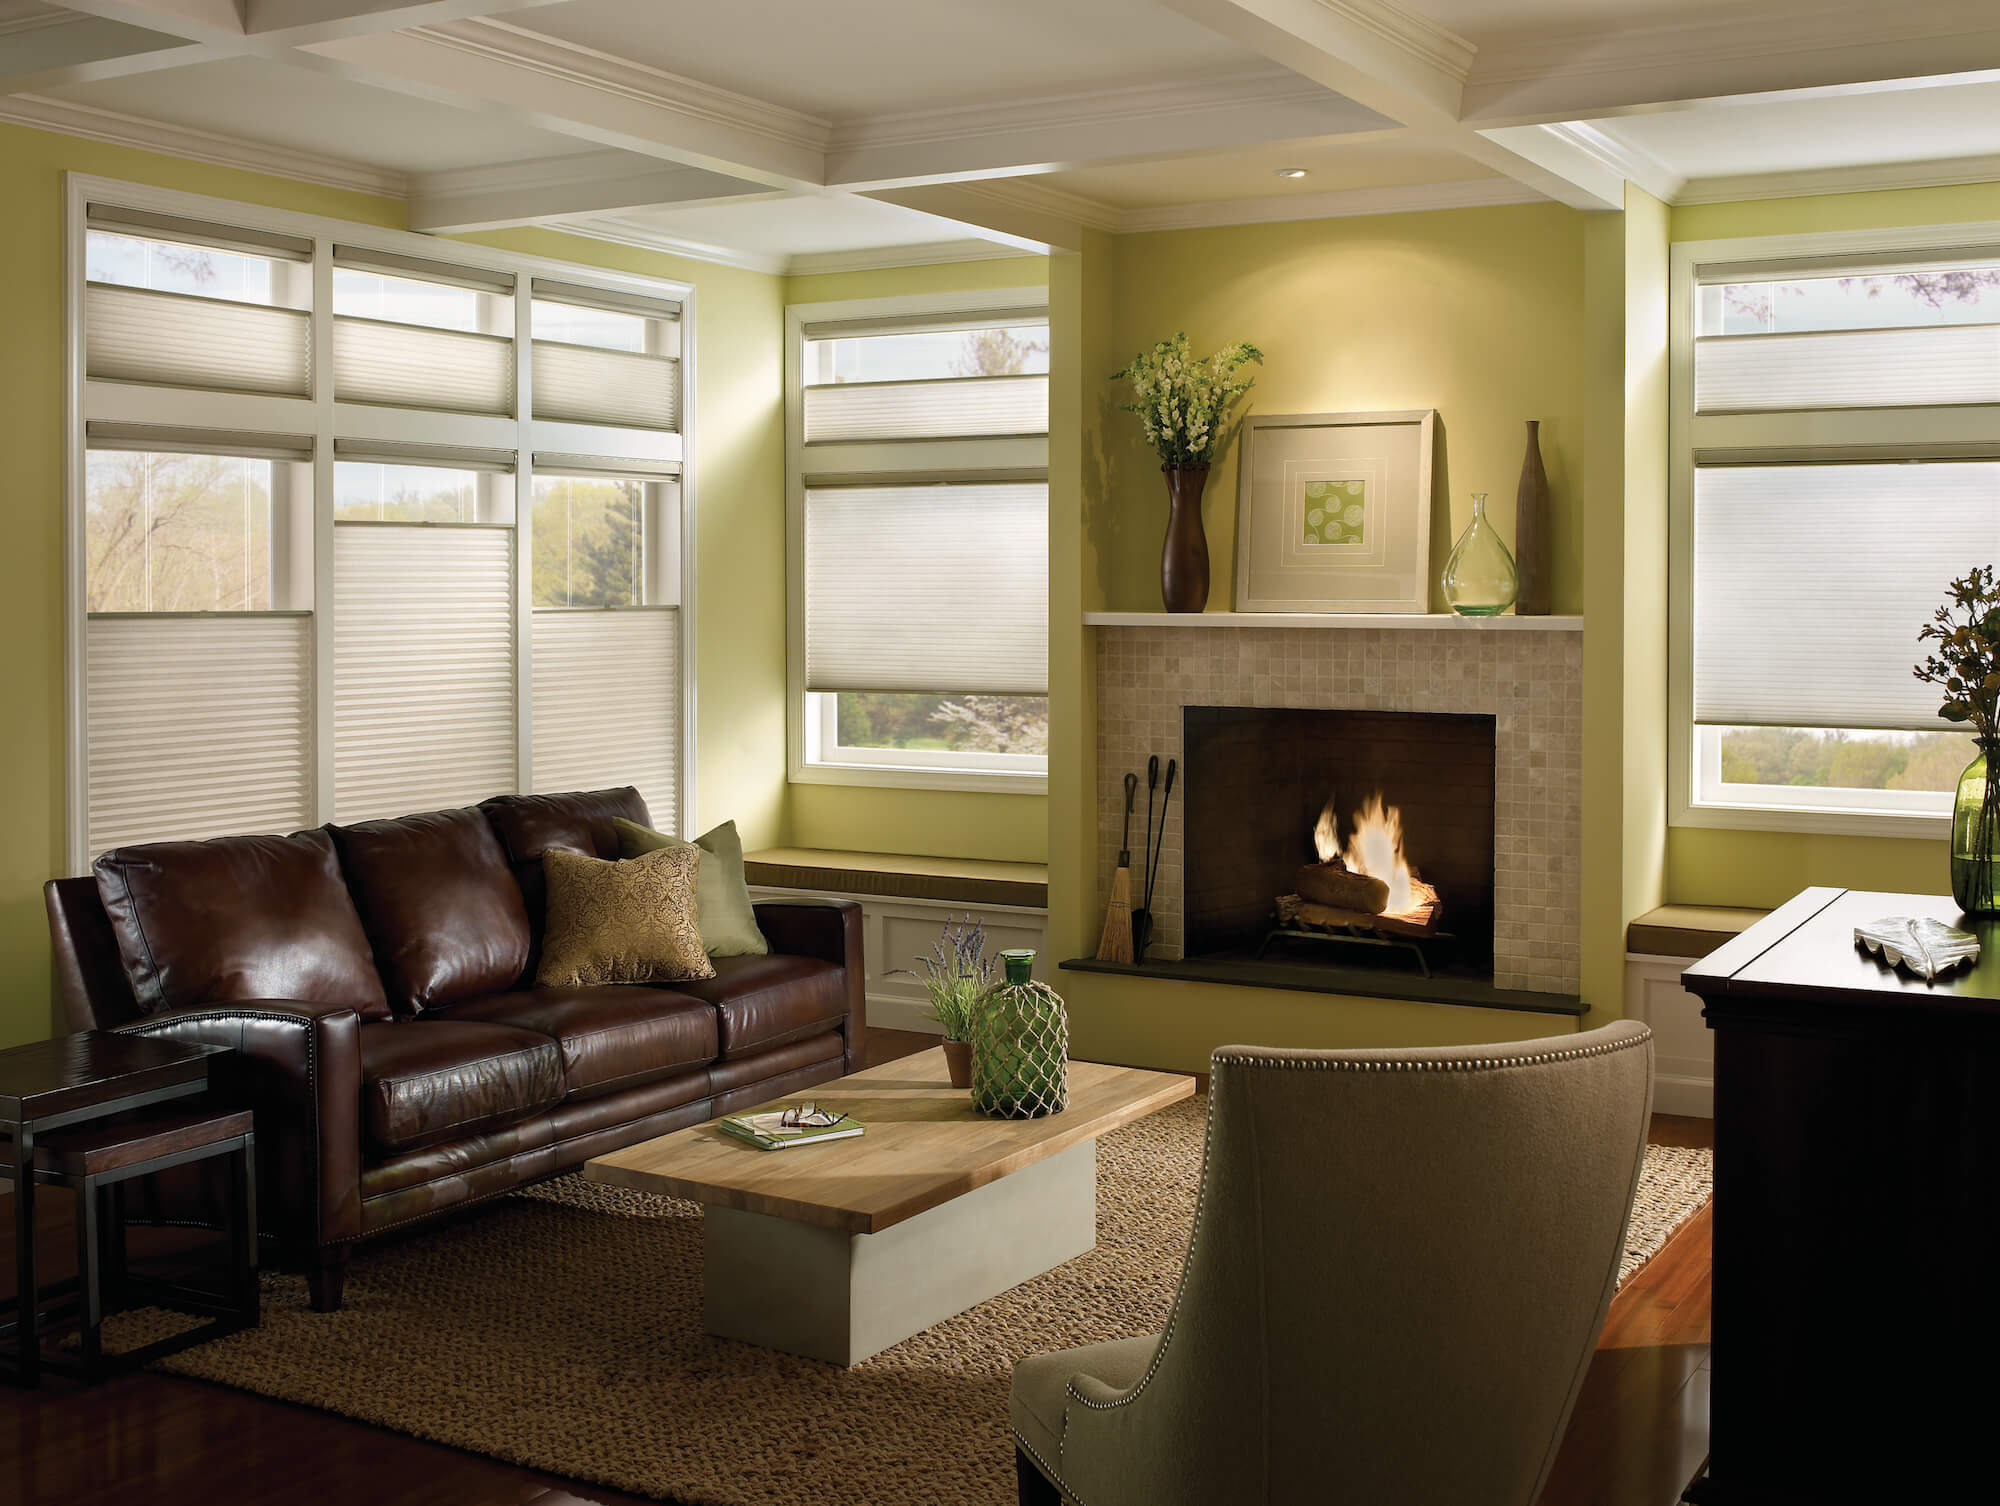 top-down bottom-up Applause Honeycomb shades in living room